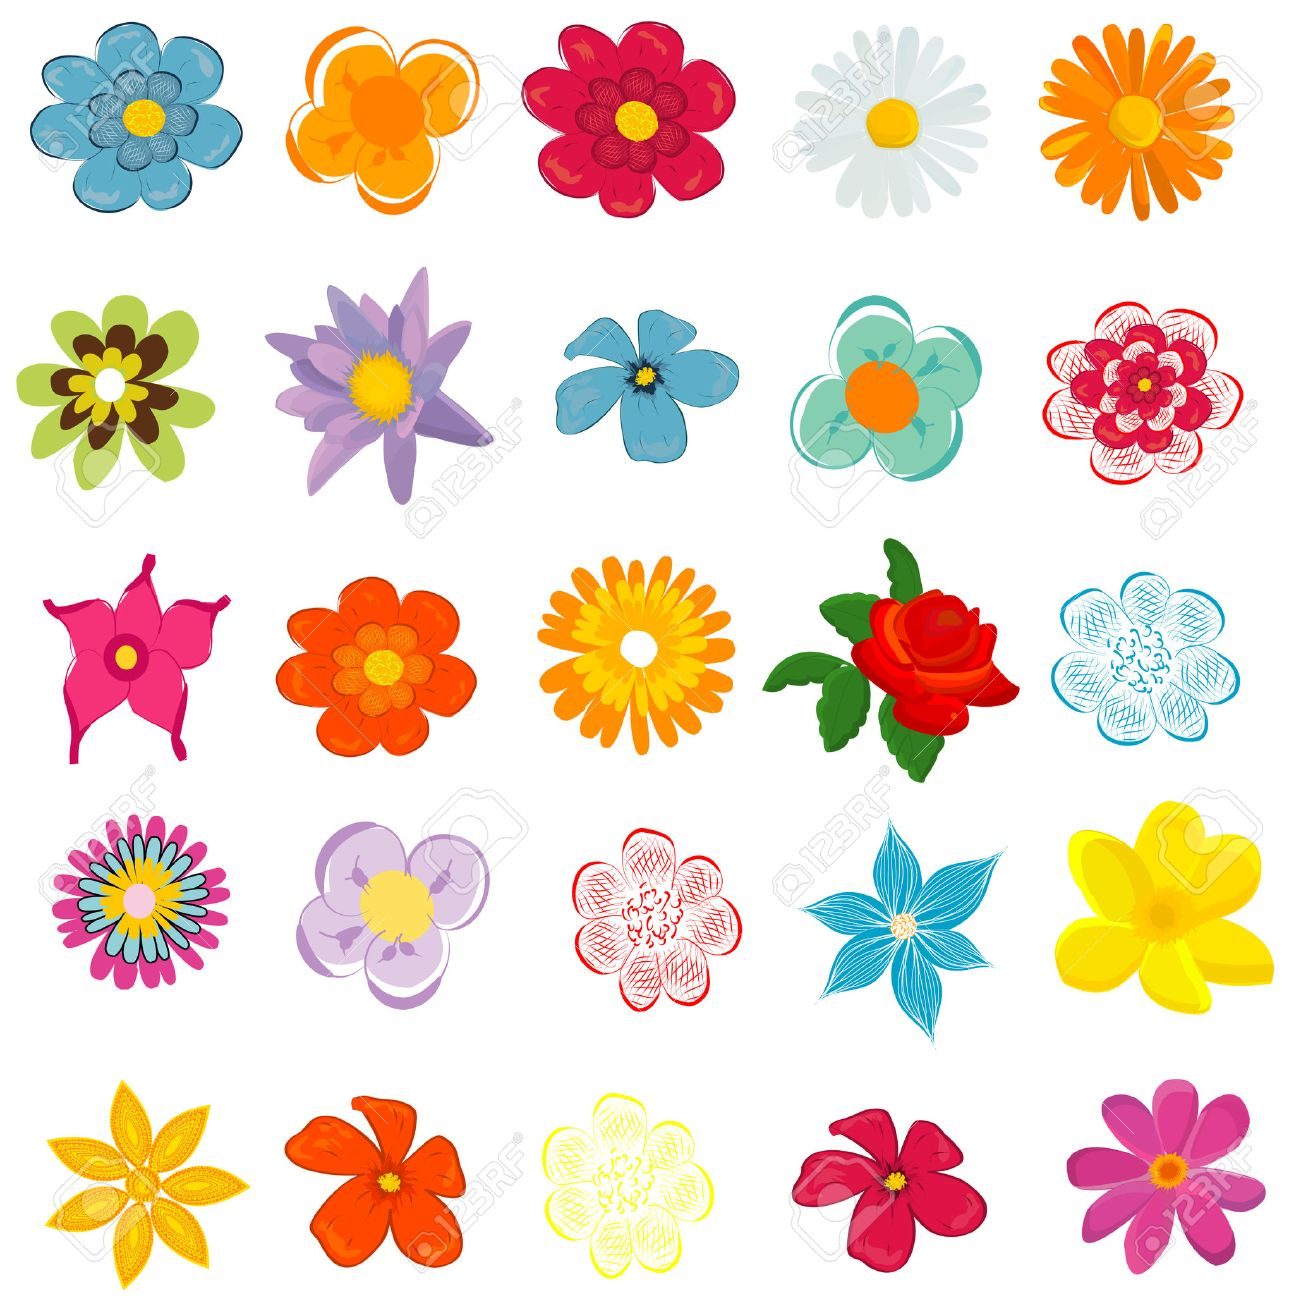 Colorful Spring Flowers Vector Illustration Royalty Free Cliparts Vectors And Stock Illustration Image 46269033